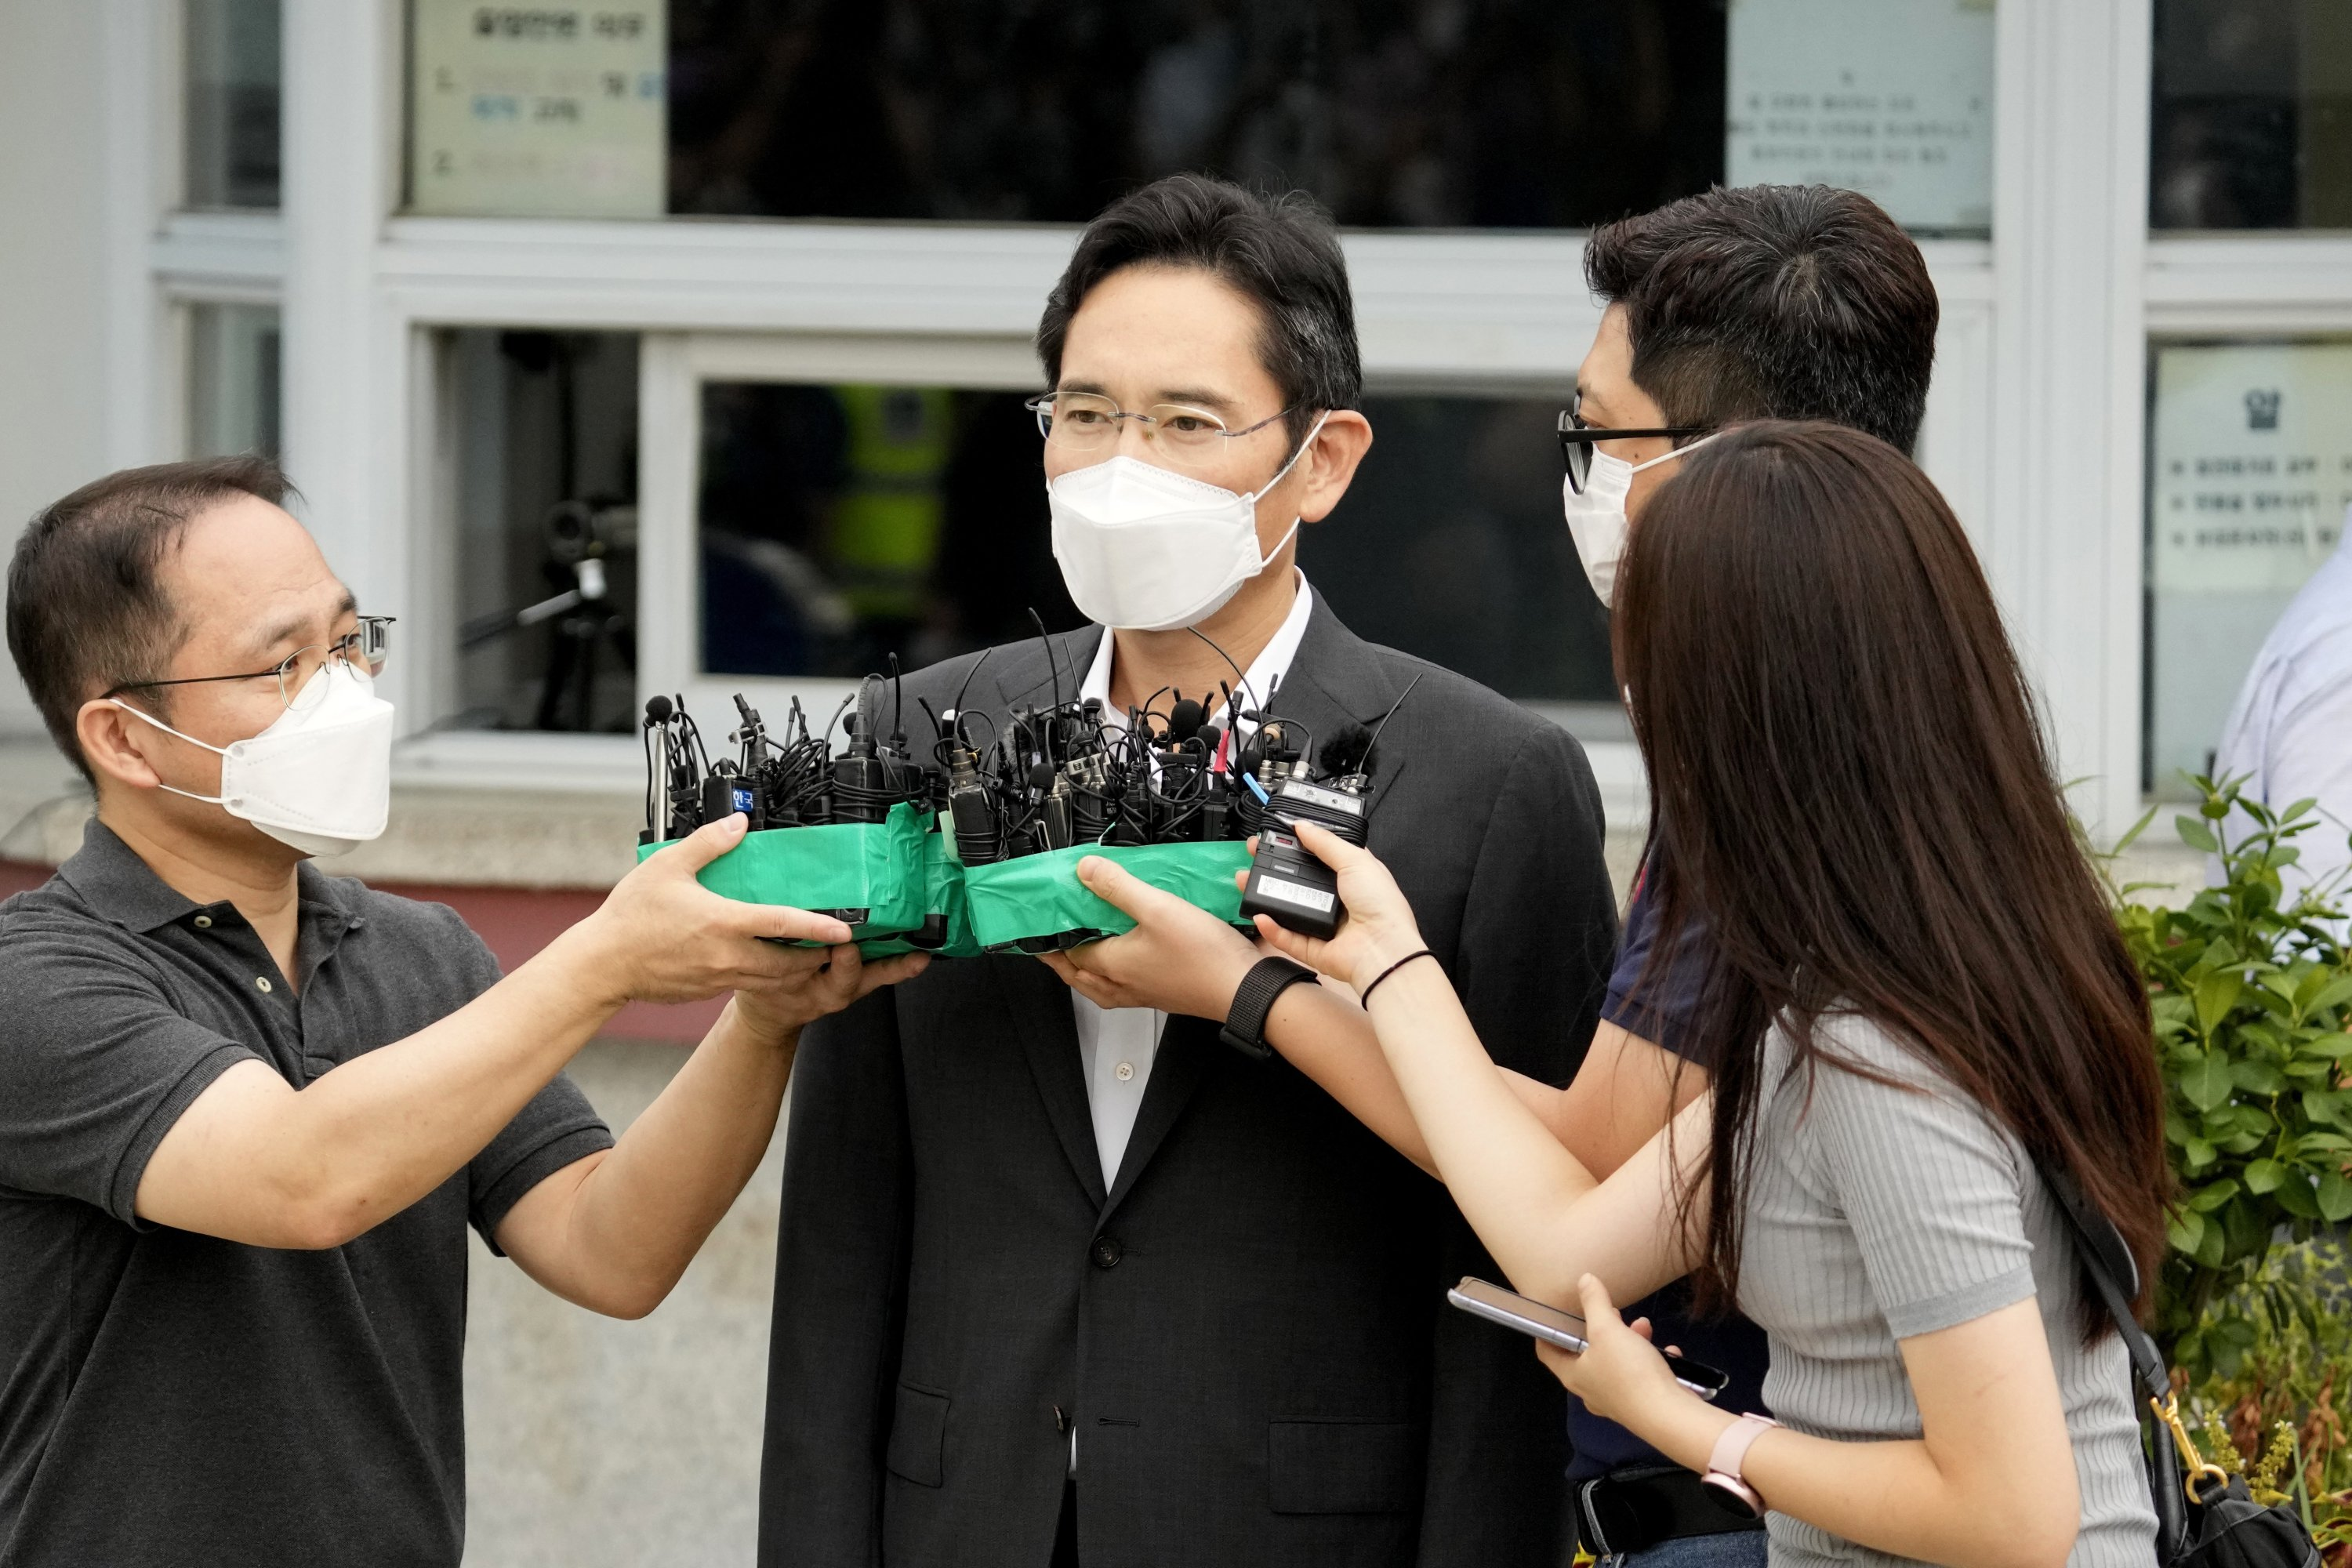 Lee Jae-yong, vice chairperson for Samsung Electronics, speaks to the media outside of a detention center in Uiwang, South Korea, Aug. 13, 2021. (AP Photo)